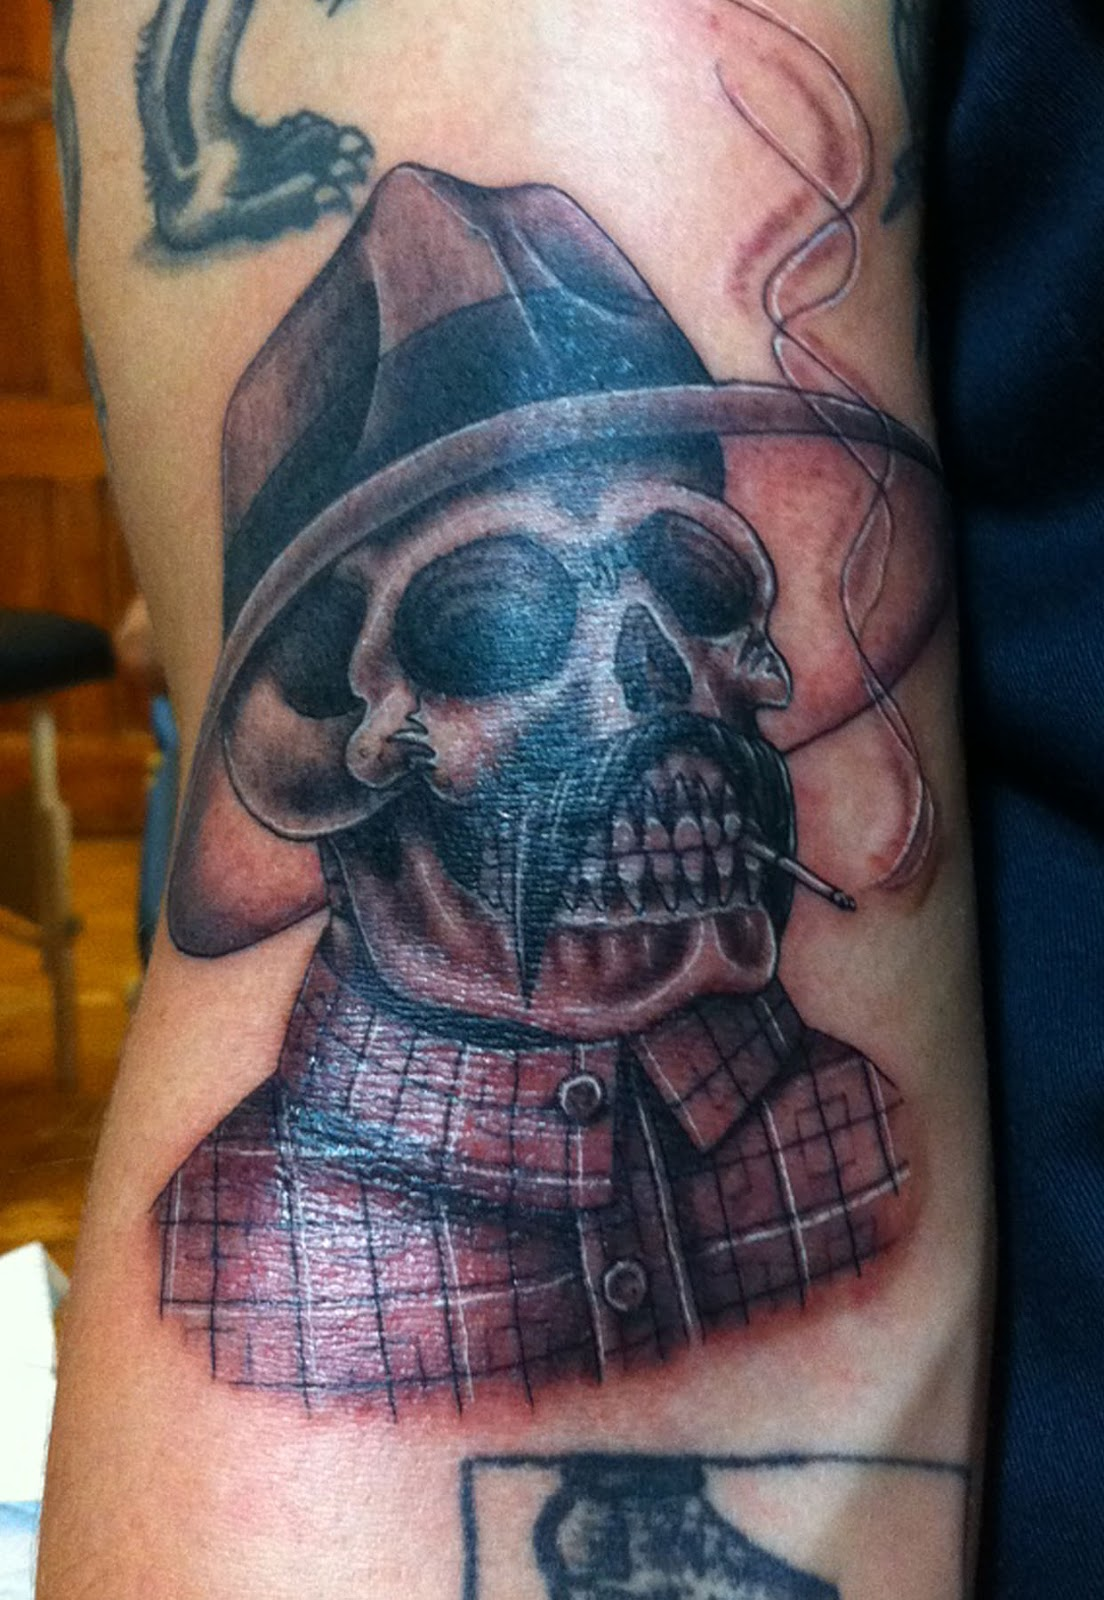 Cholo Tattoos Face: Cholo Tattoos - 25 Hot Collections